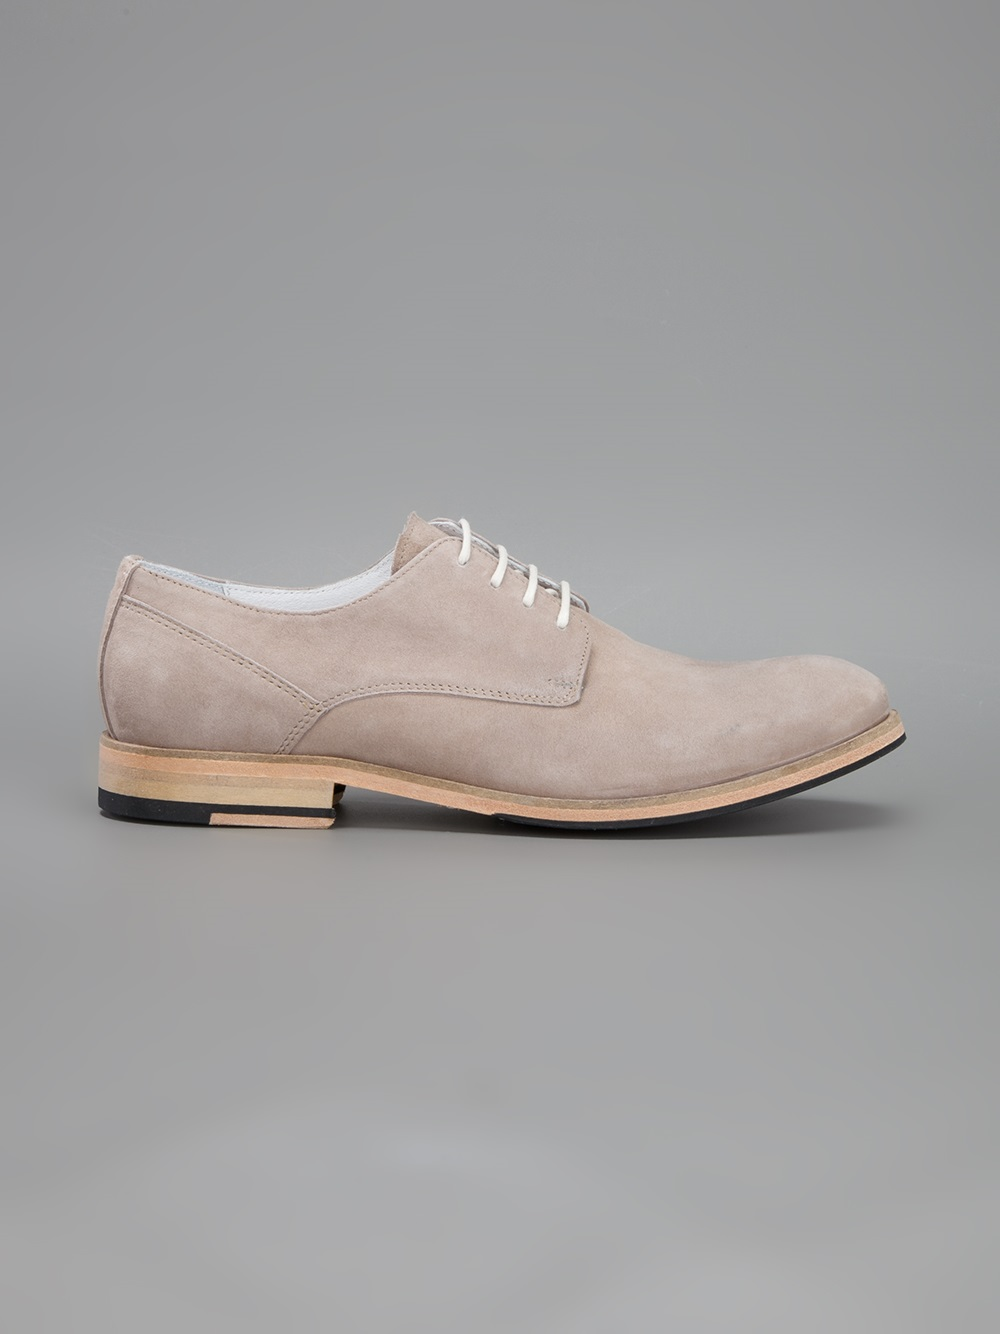 National Standard Classic Derby Shoe in Nude (Natural) for Men